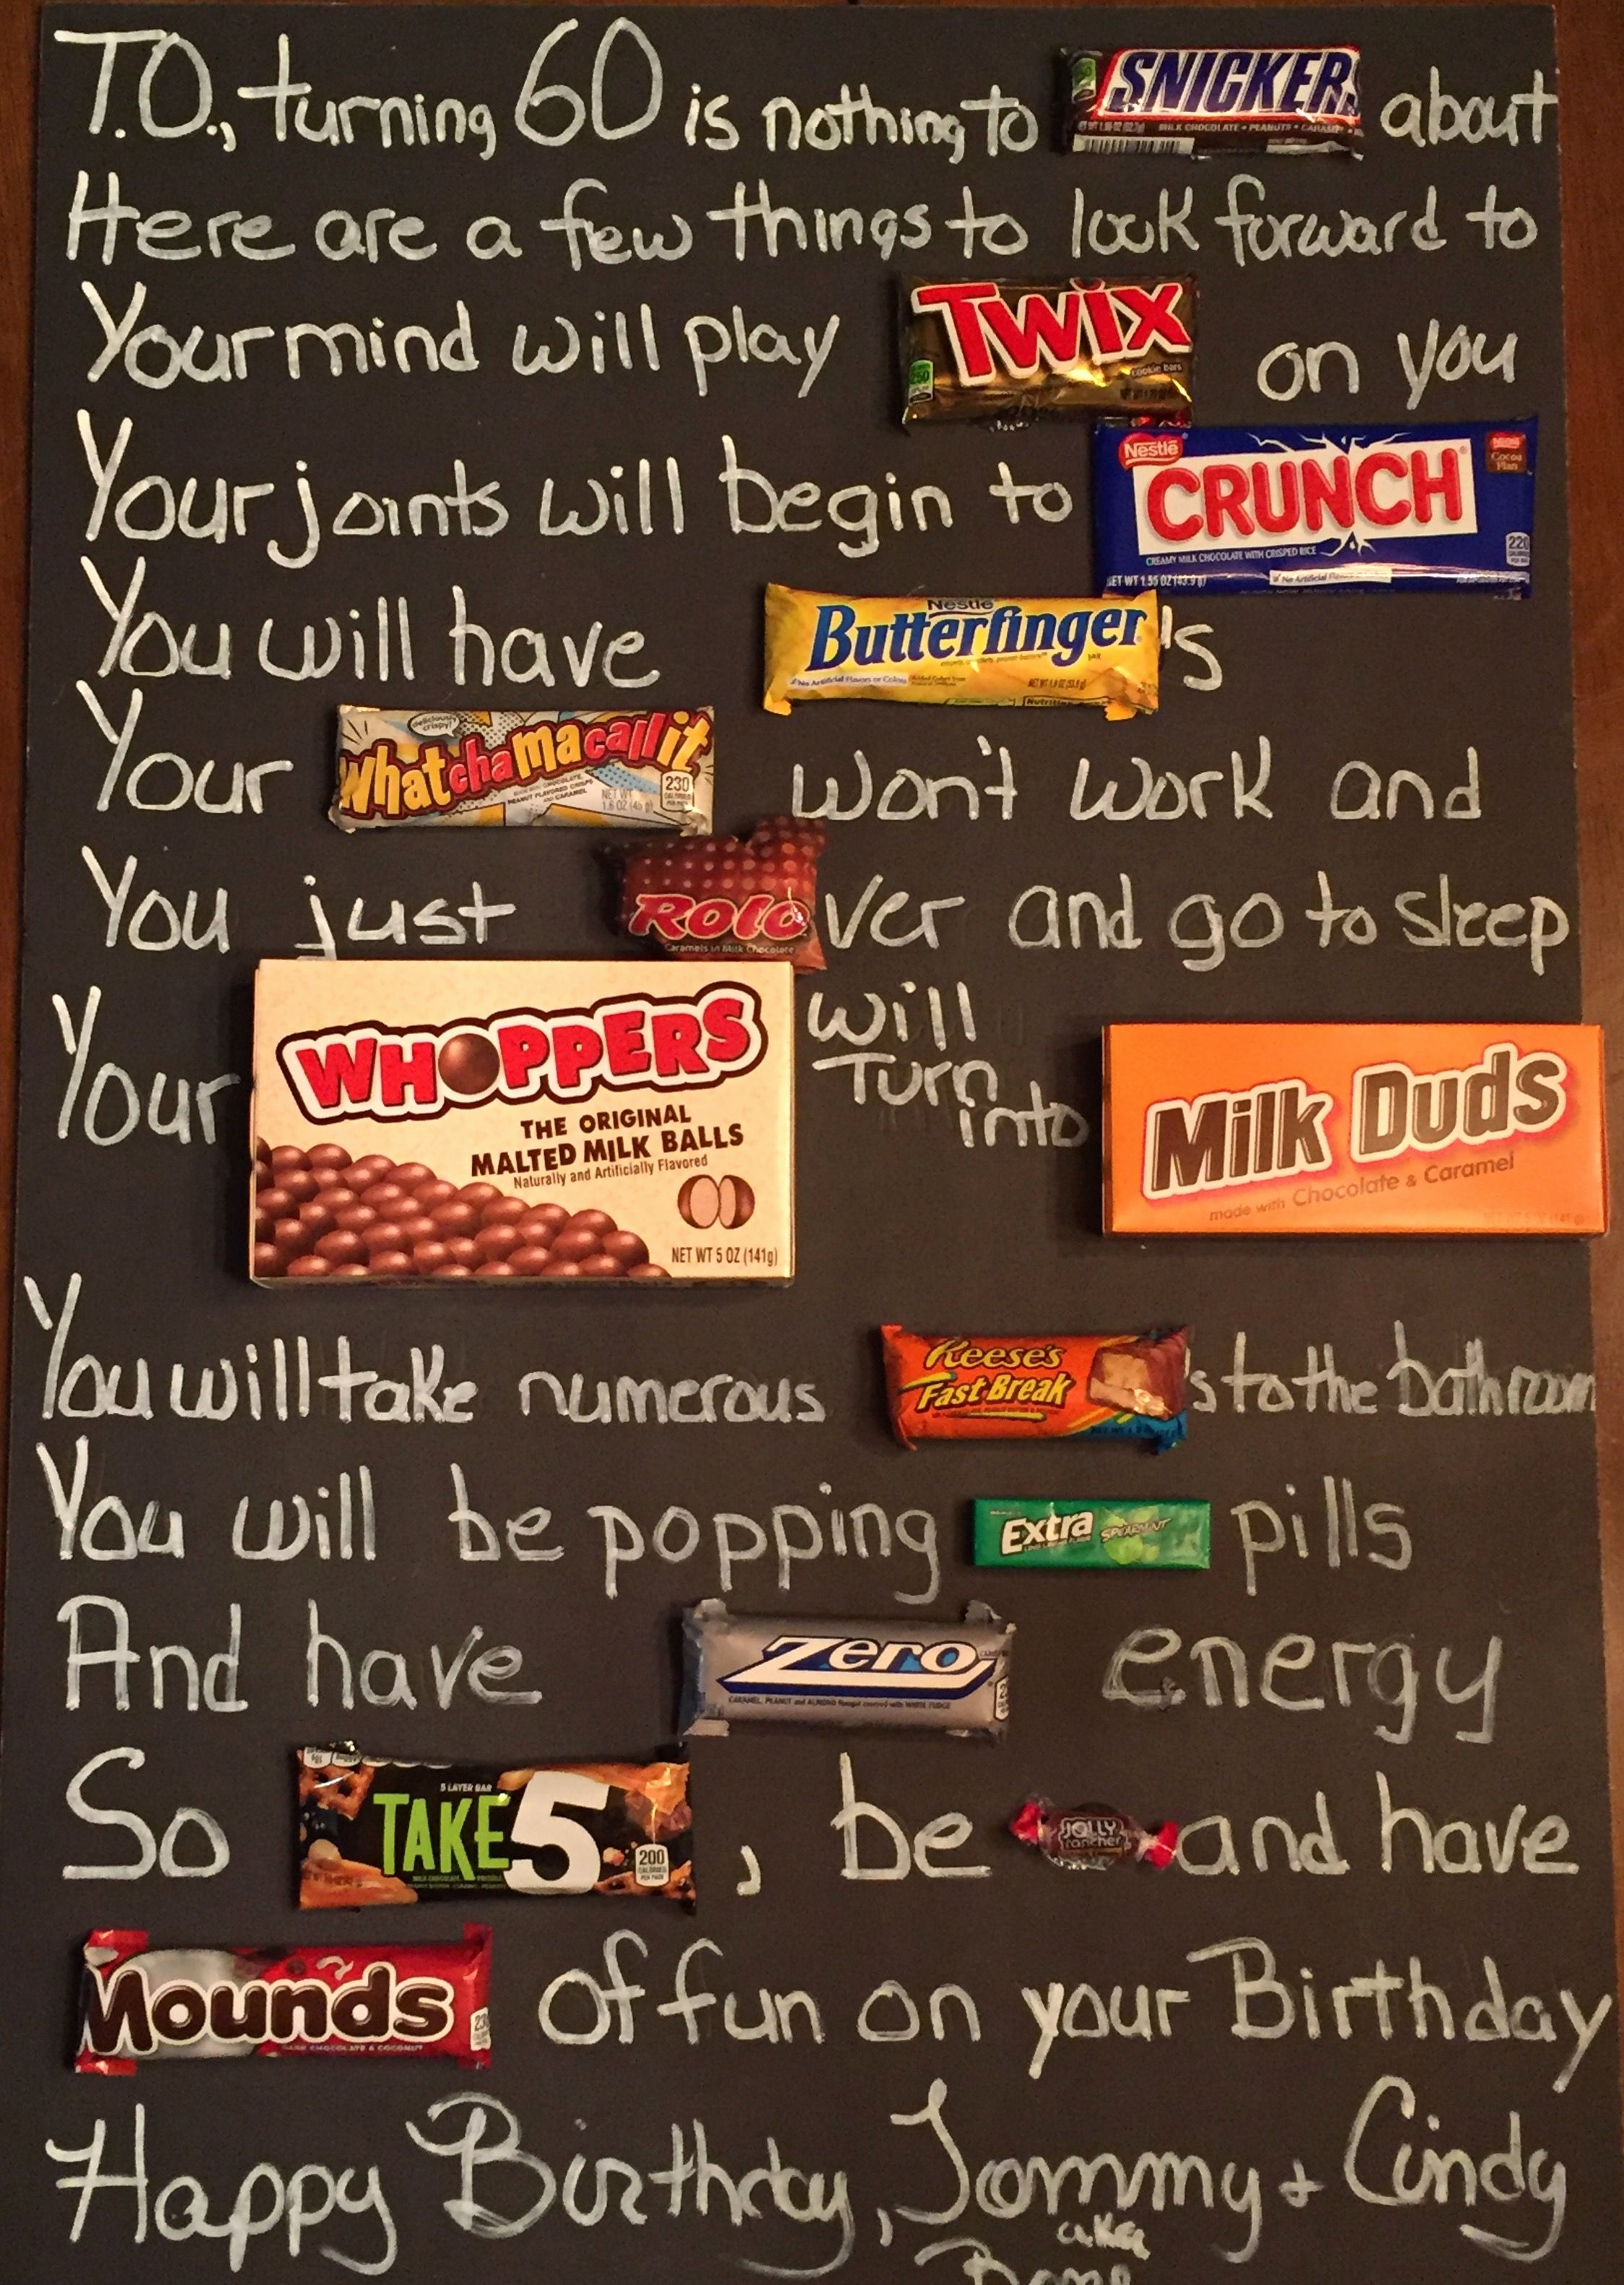 candy bar poster for 40th birthday ; what-to-write-in-a-40th-birthday-card-new-old-age-over-the-hill-60th-birthday-candy-card-poster-using-candy-of-what-to-write-in-a-40th-birthday-card